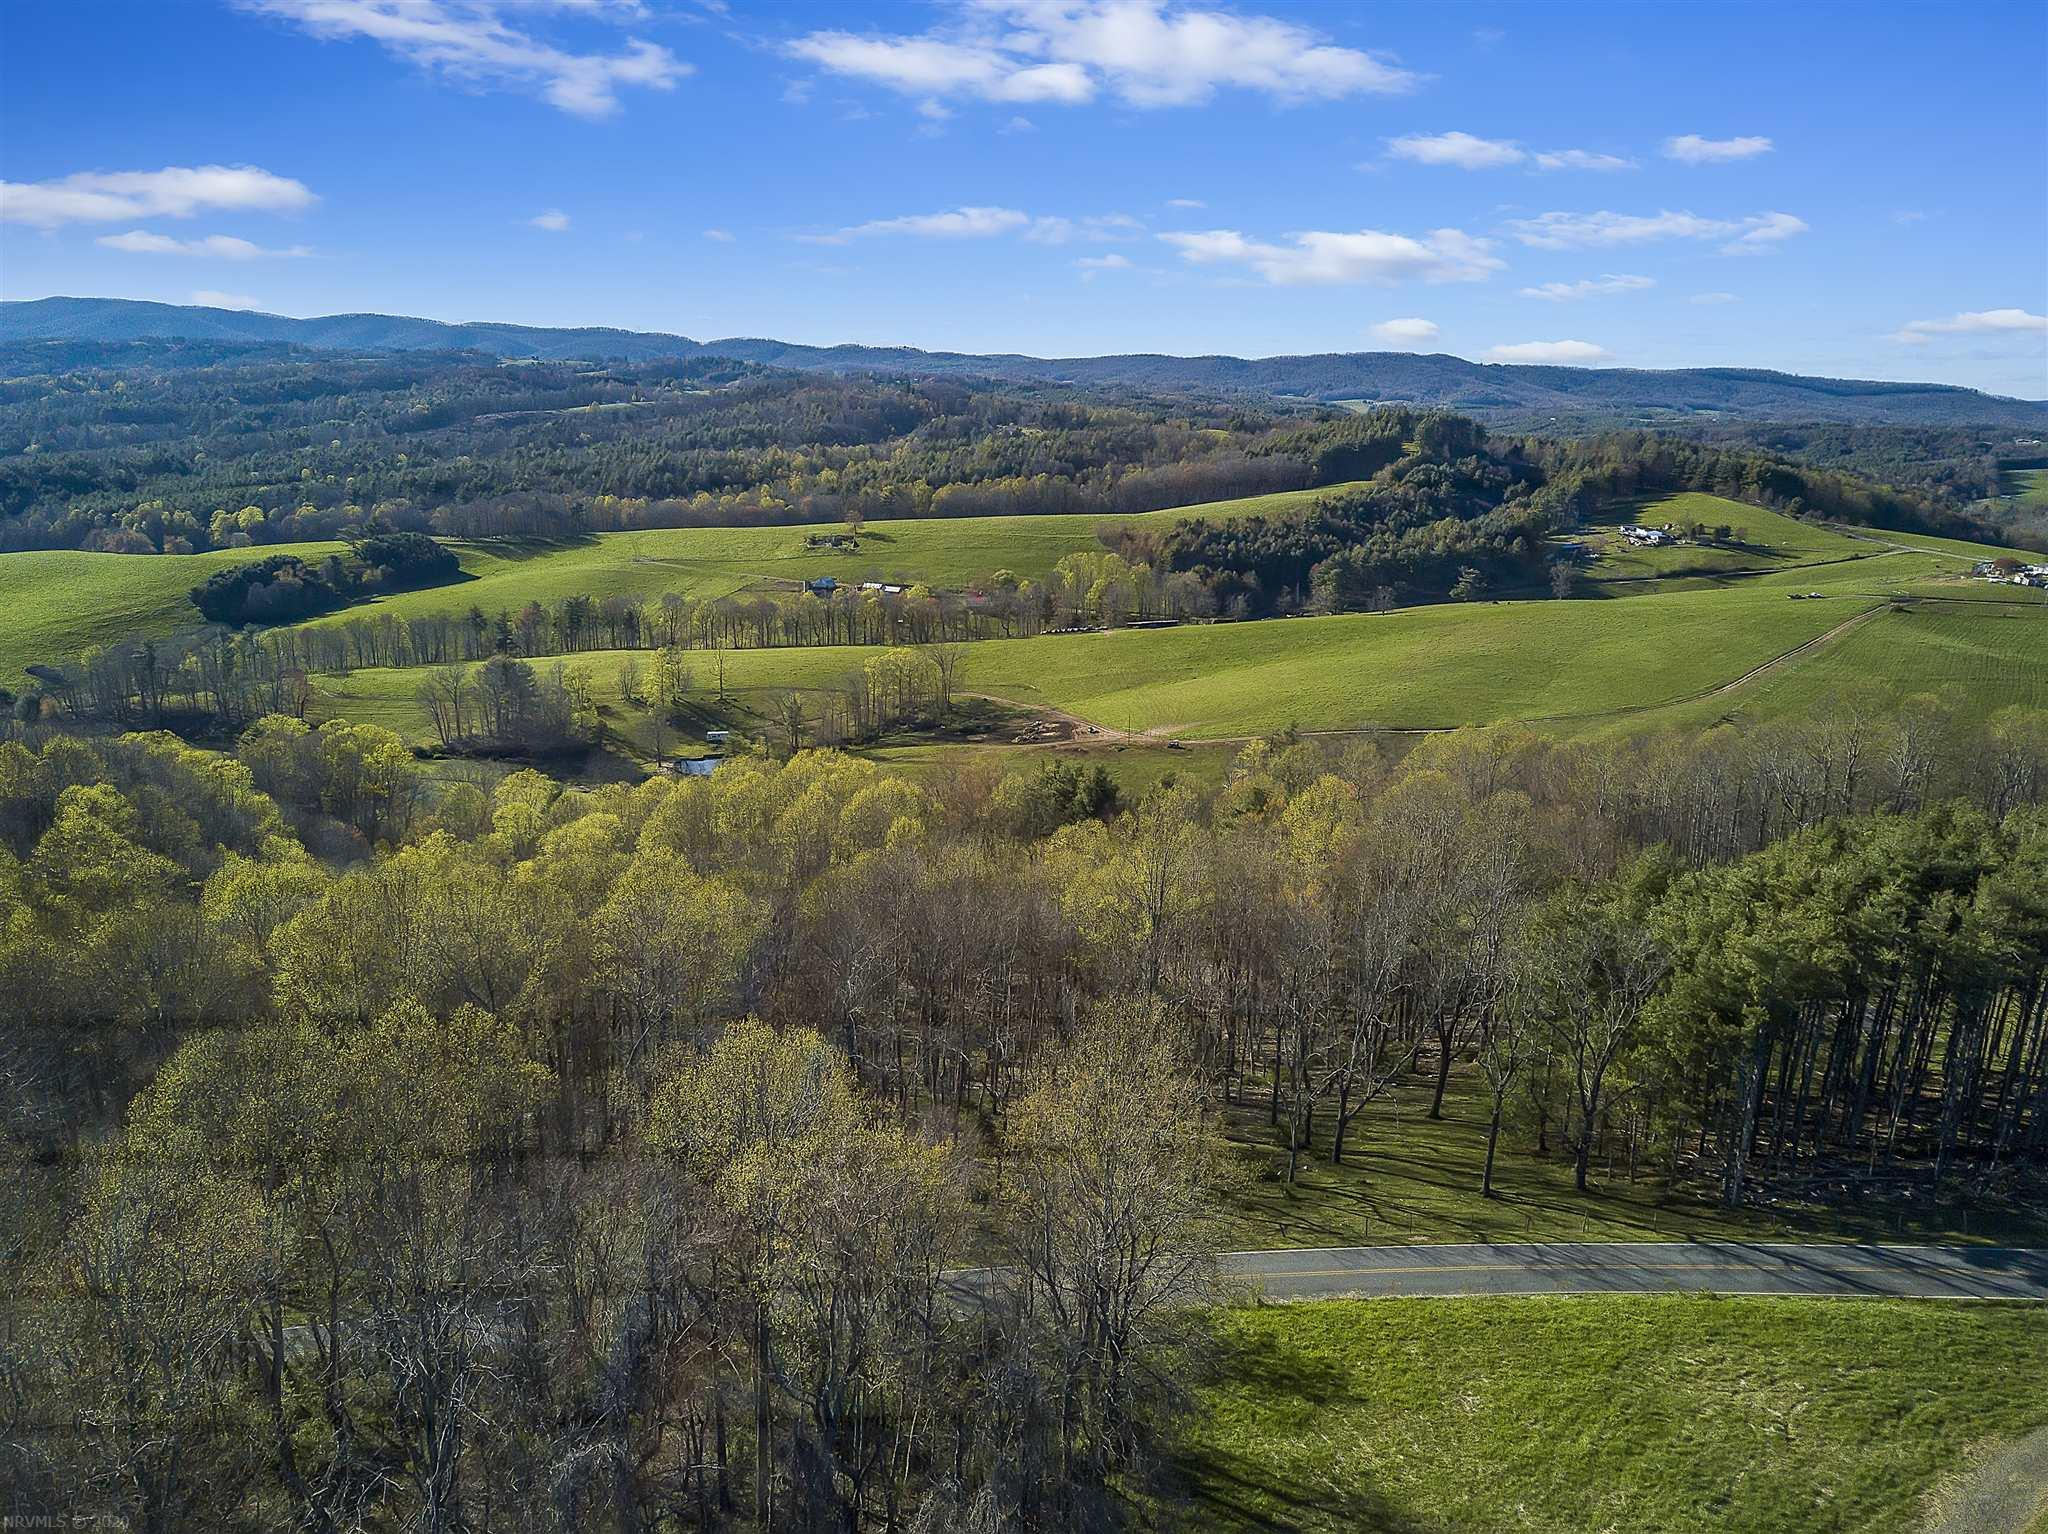 Enjoy the peaceful country setting and beautiful sunset views on this 12 ac property in Floyd County.  There is a spring on this property, and it is fenced for cattle (currently has cattle grazing on it).  It's divided into two tracts, and has great building sites on both!  You can be to the Blacksburg/Christiansburg area in just 30 minutes, or Floyd or Hillsville in just 25, making it convenient for wherever you need to go, while still being able to live in a rural setting.  Would make an excellent location to build a house and plenty of room to keep animals.  Come check it out today!